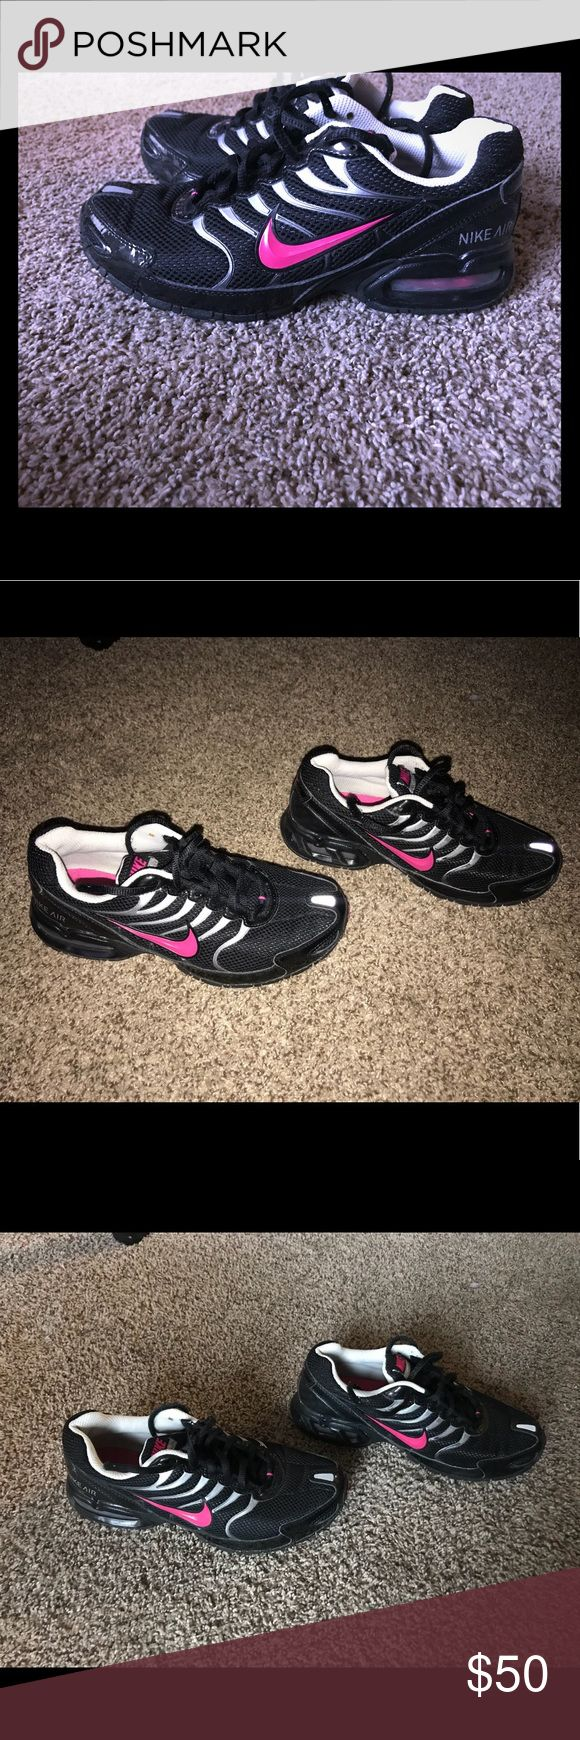 Nike Air Max Torch 4 EUC Nike Air Max Torch 4 Running Shoe Black/Pink Excellent used condition. Pet free and smoke free home. Nike Shoes Athletic Shoes